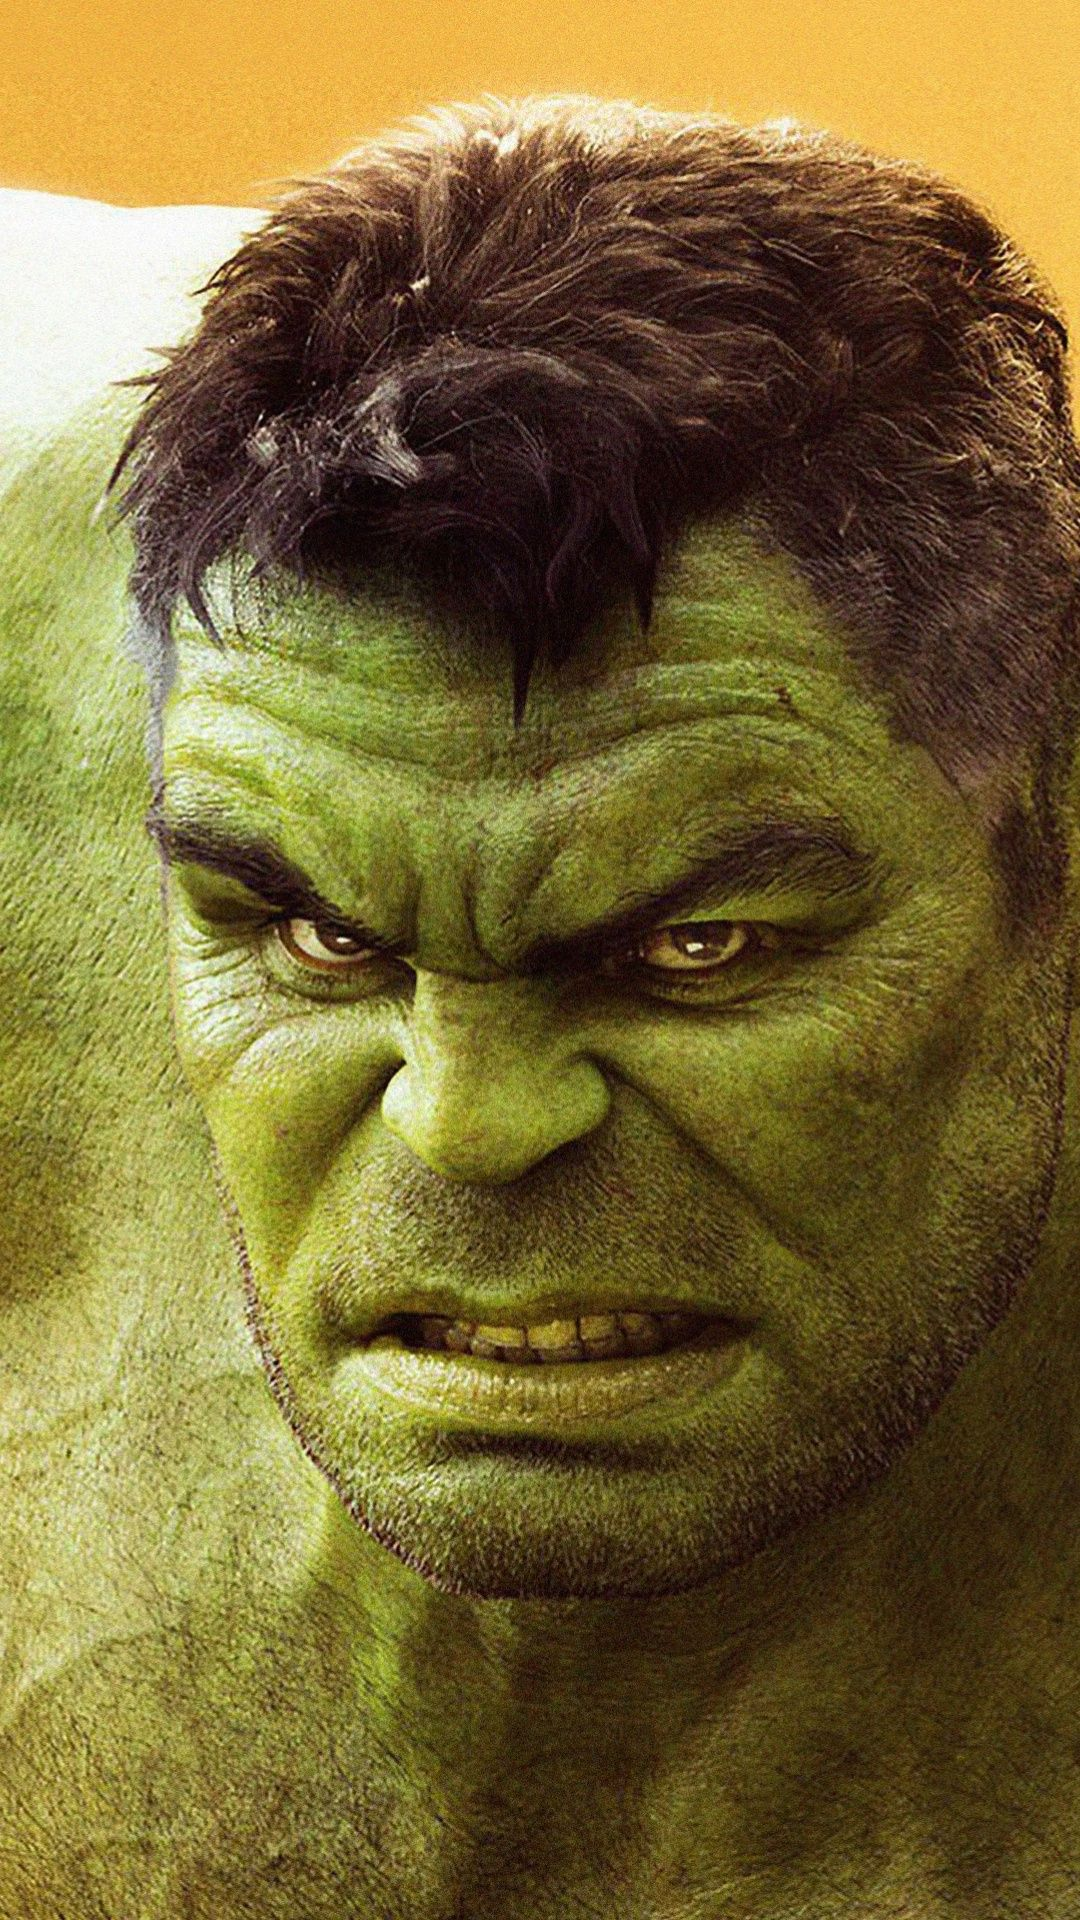 Mighty Hulk Green Superhero Movie Avengers Infinity War 1080x1920 Wallpaper Hulk Avengers Hulk Marvel Hulk Art